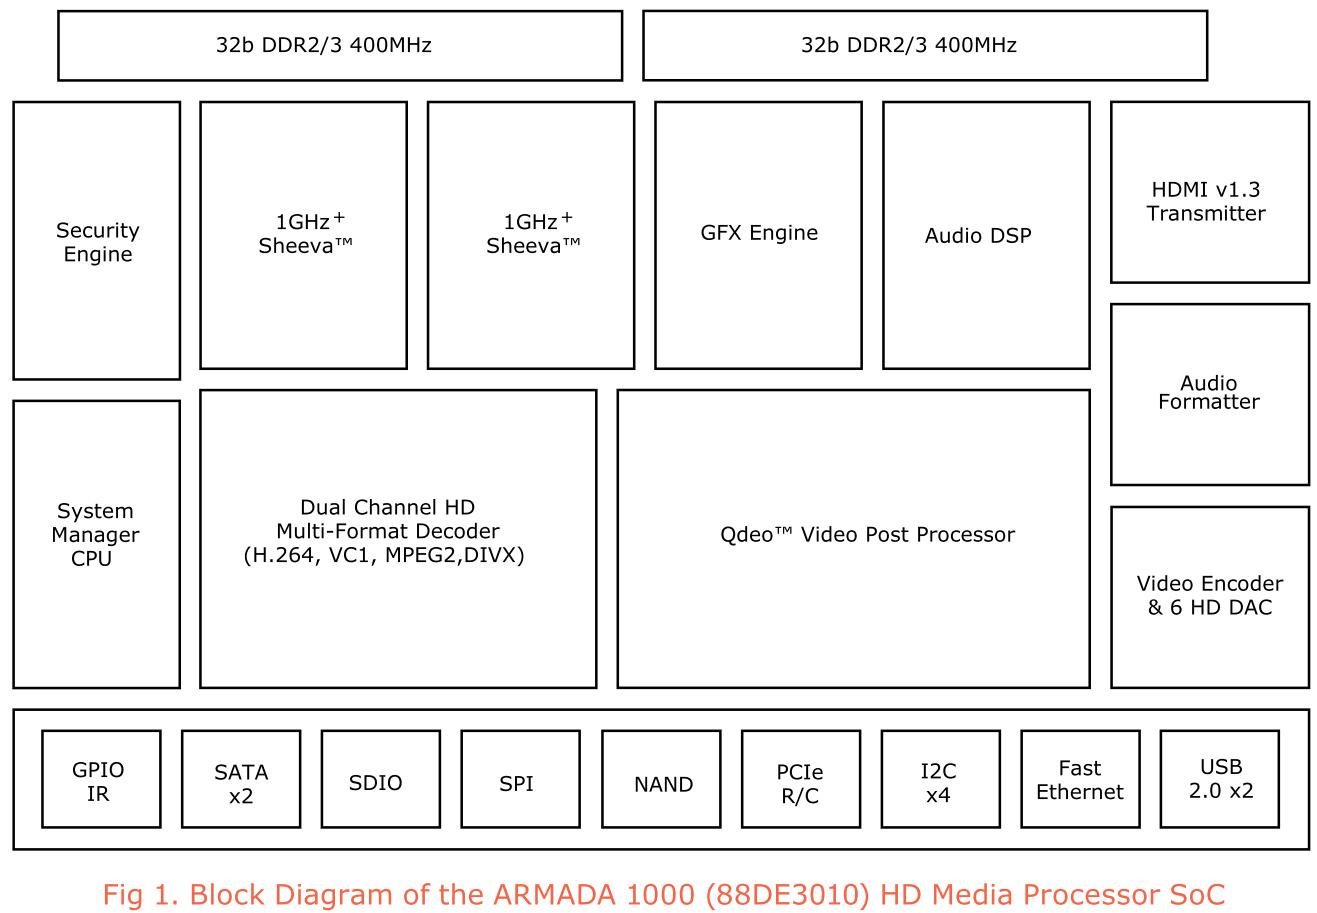 Marvell 88de3010 Nixeus Fusion Xs Brings Into The Dma Market Mpeg 1 Block Diagram Also Integrates A High Performance Graphics Accelerator For Osd And Ui Functionality Unfortunately This Is Just 2d Core From